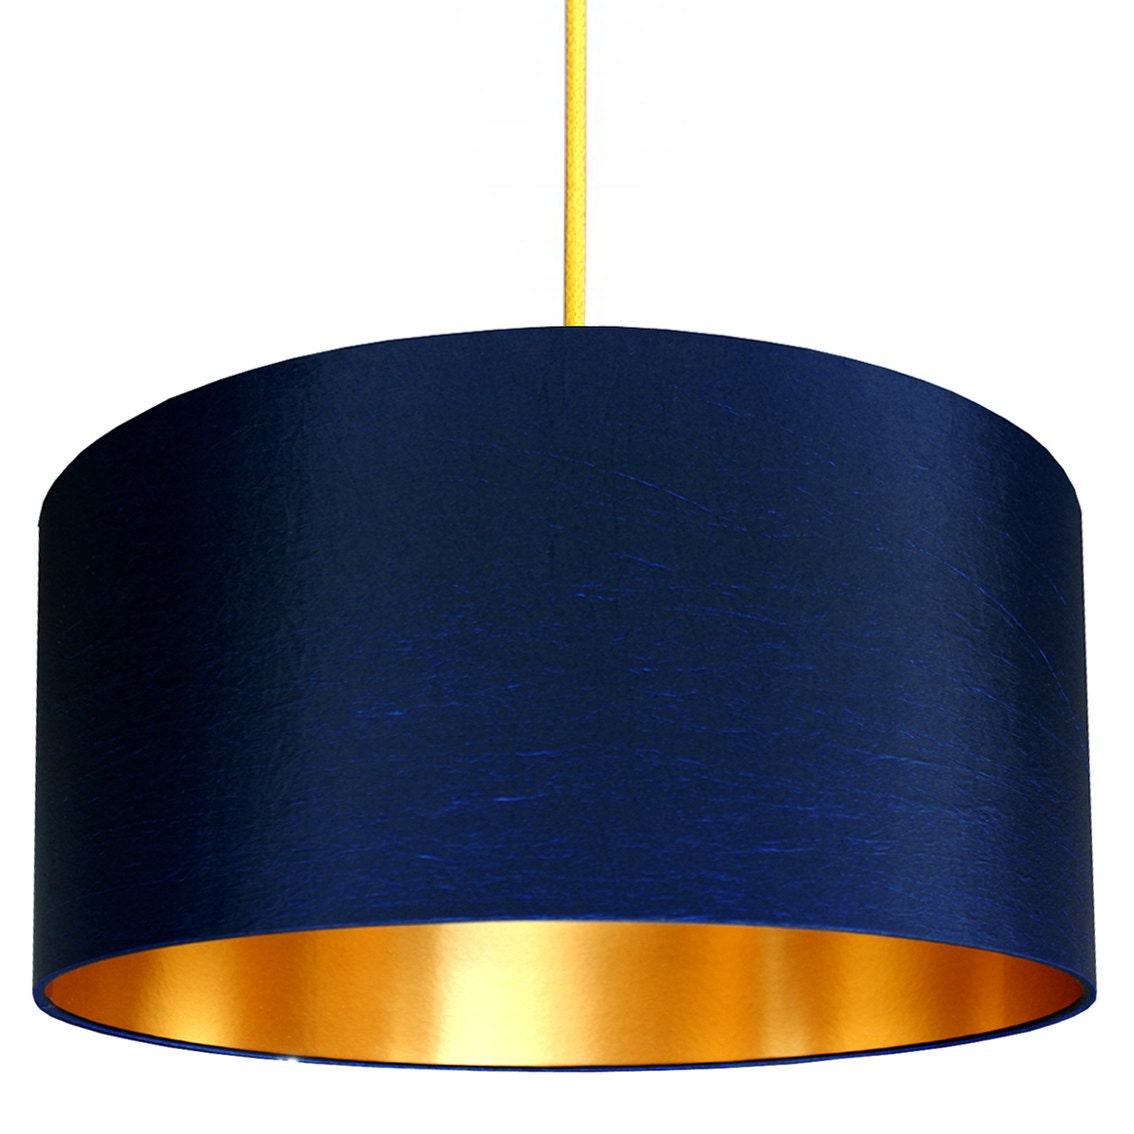 Midnight Blue Handmade Fabric Lampshade With Gold Or Brushed